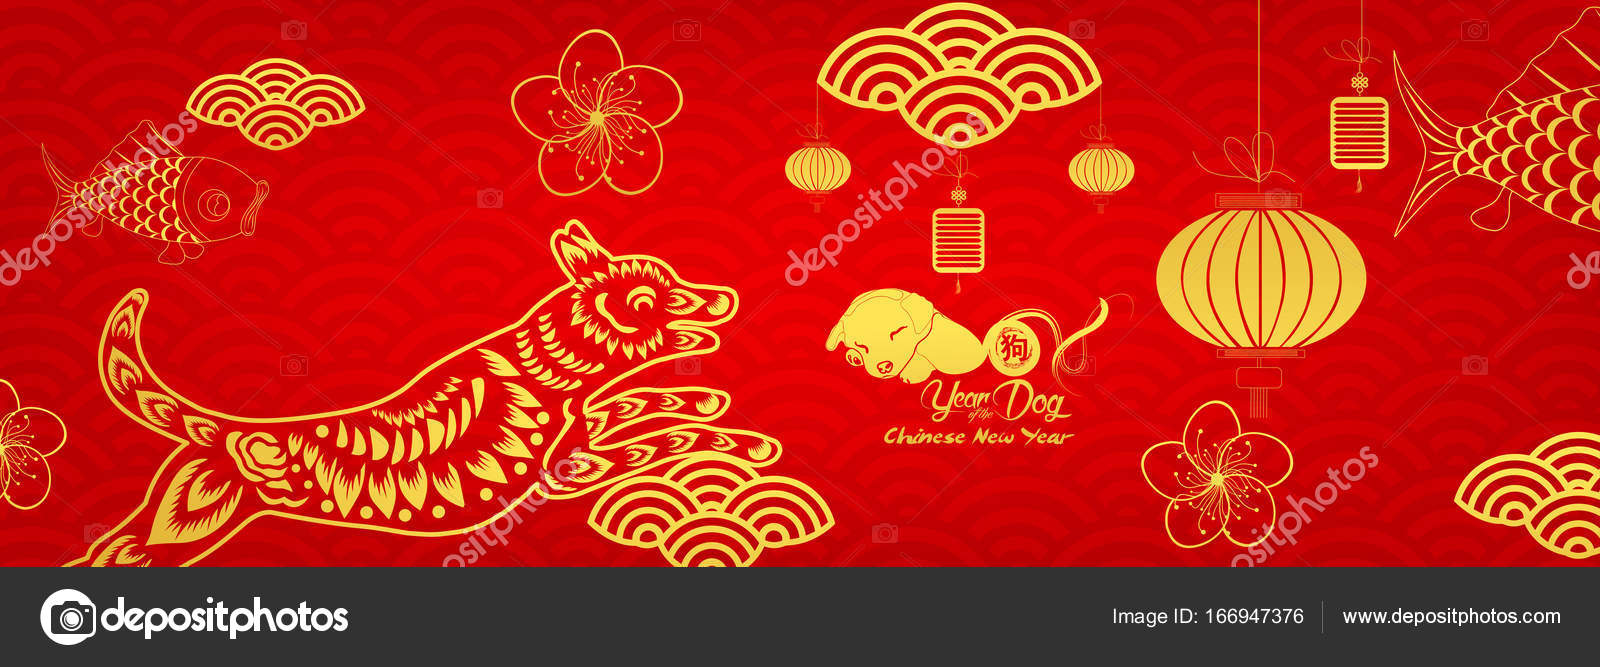 Happy new year 2018chinese new year greetings card year of dog happy new year 2018chinese new year greetings card year of dog hieroglyph m4hsunfo